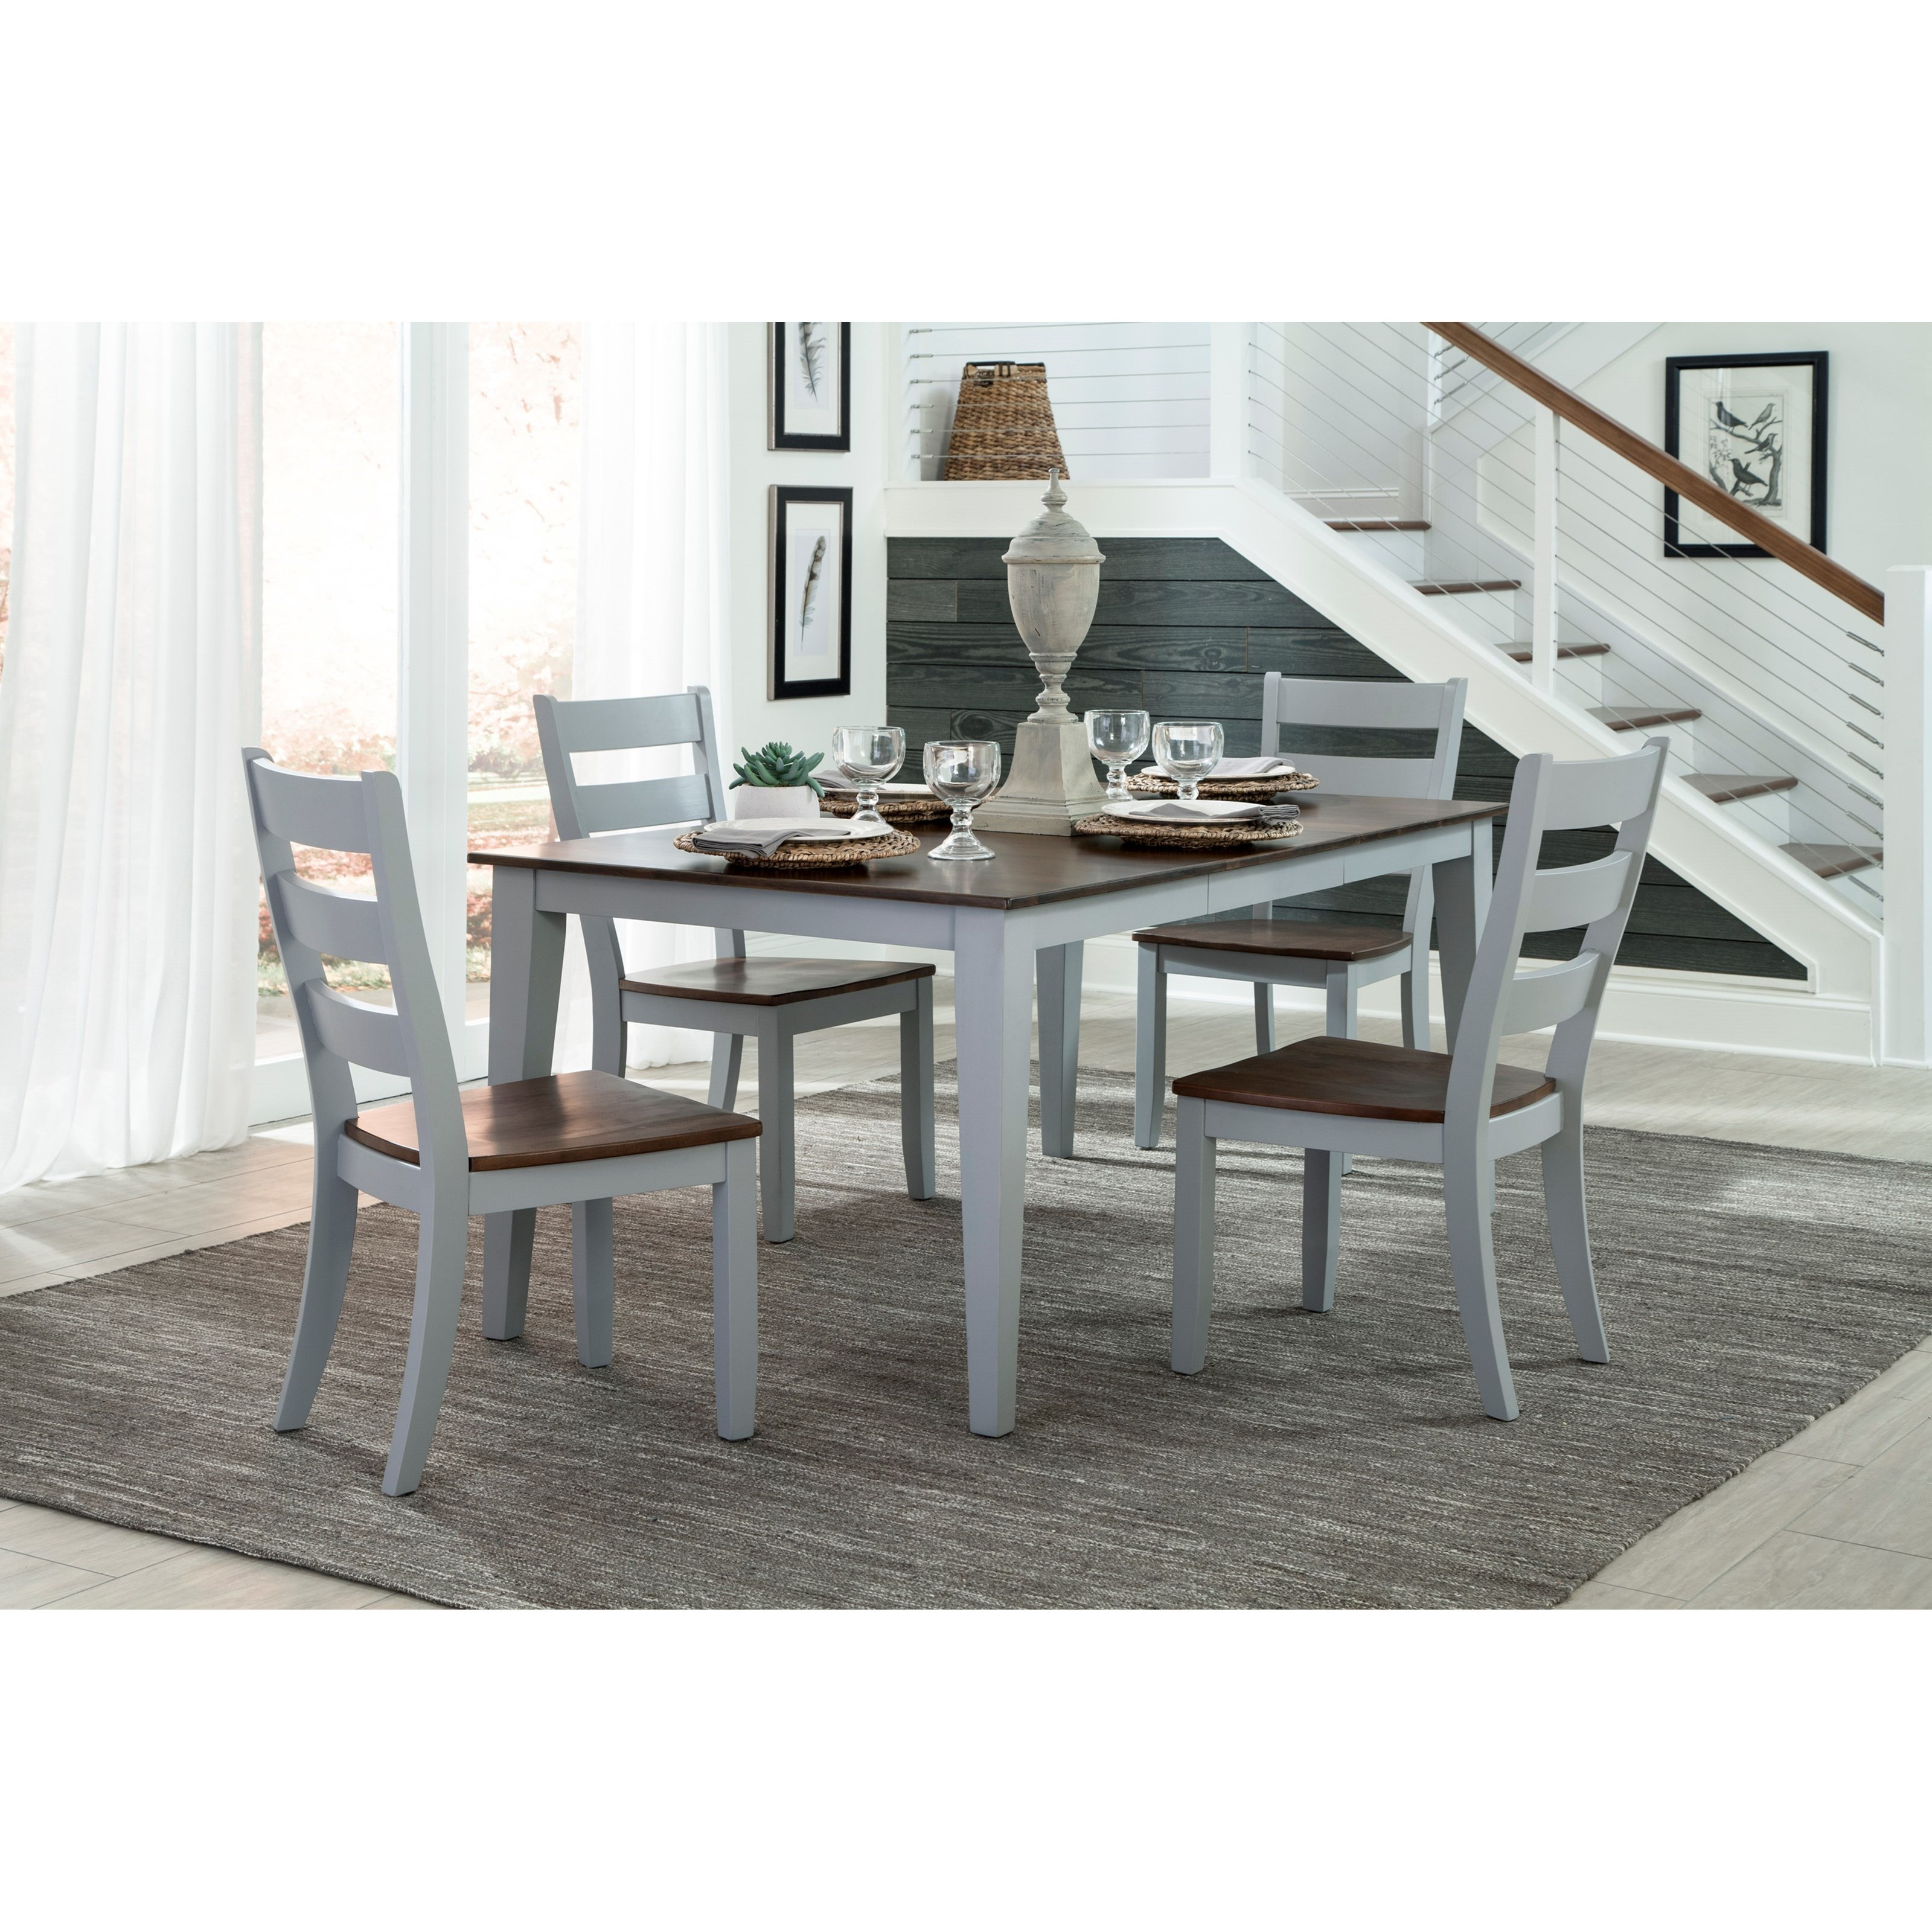 Dining Room Sets For Small Spaces: Intercon Small Space 5 Piece Table And Ladder Back Chair